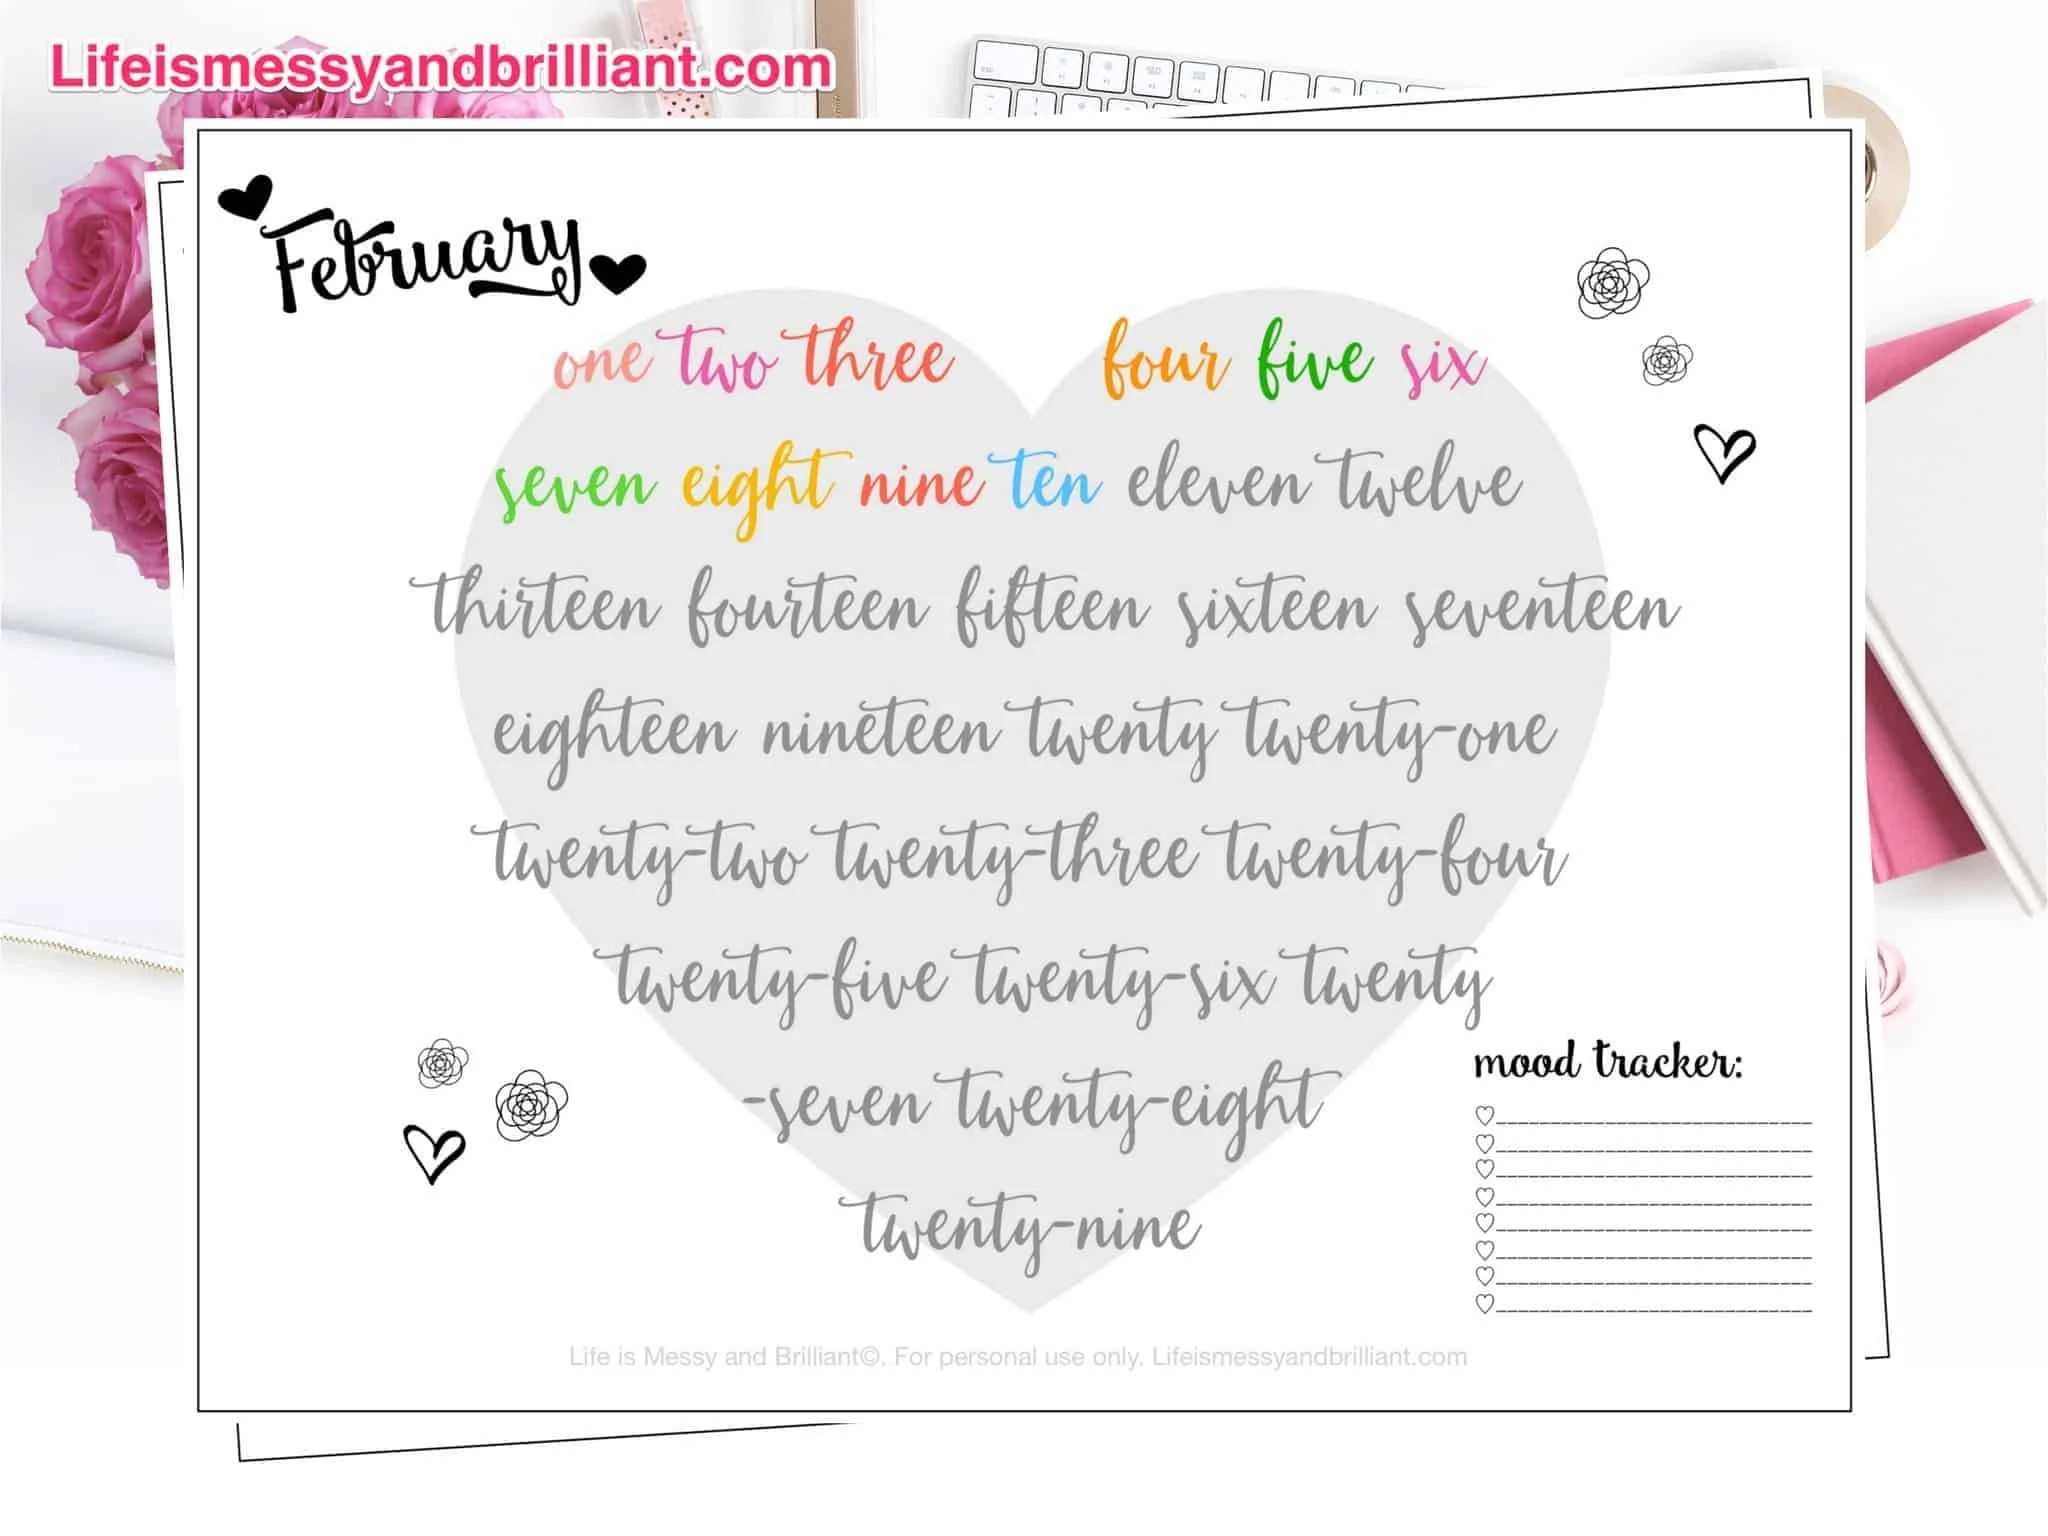 Free February Mood Tracker Lettering Printable